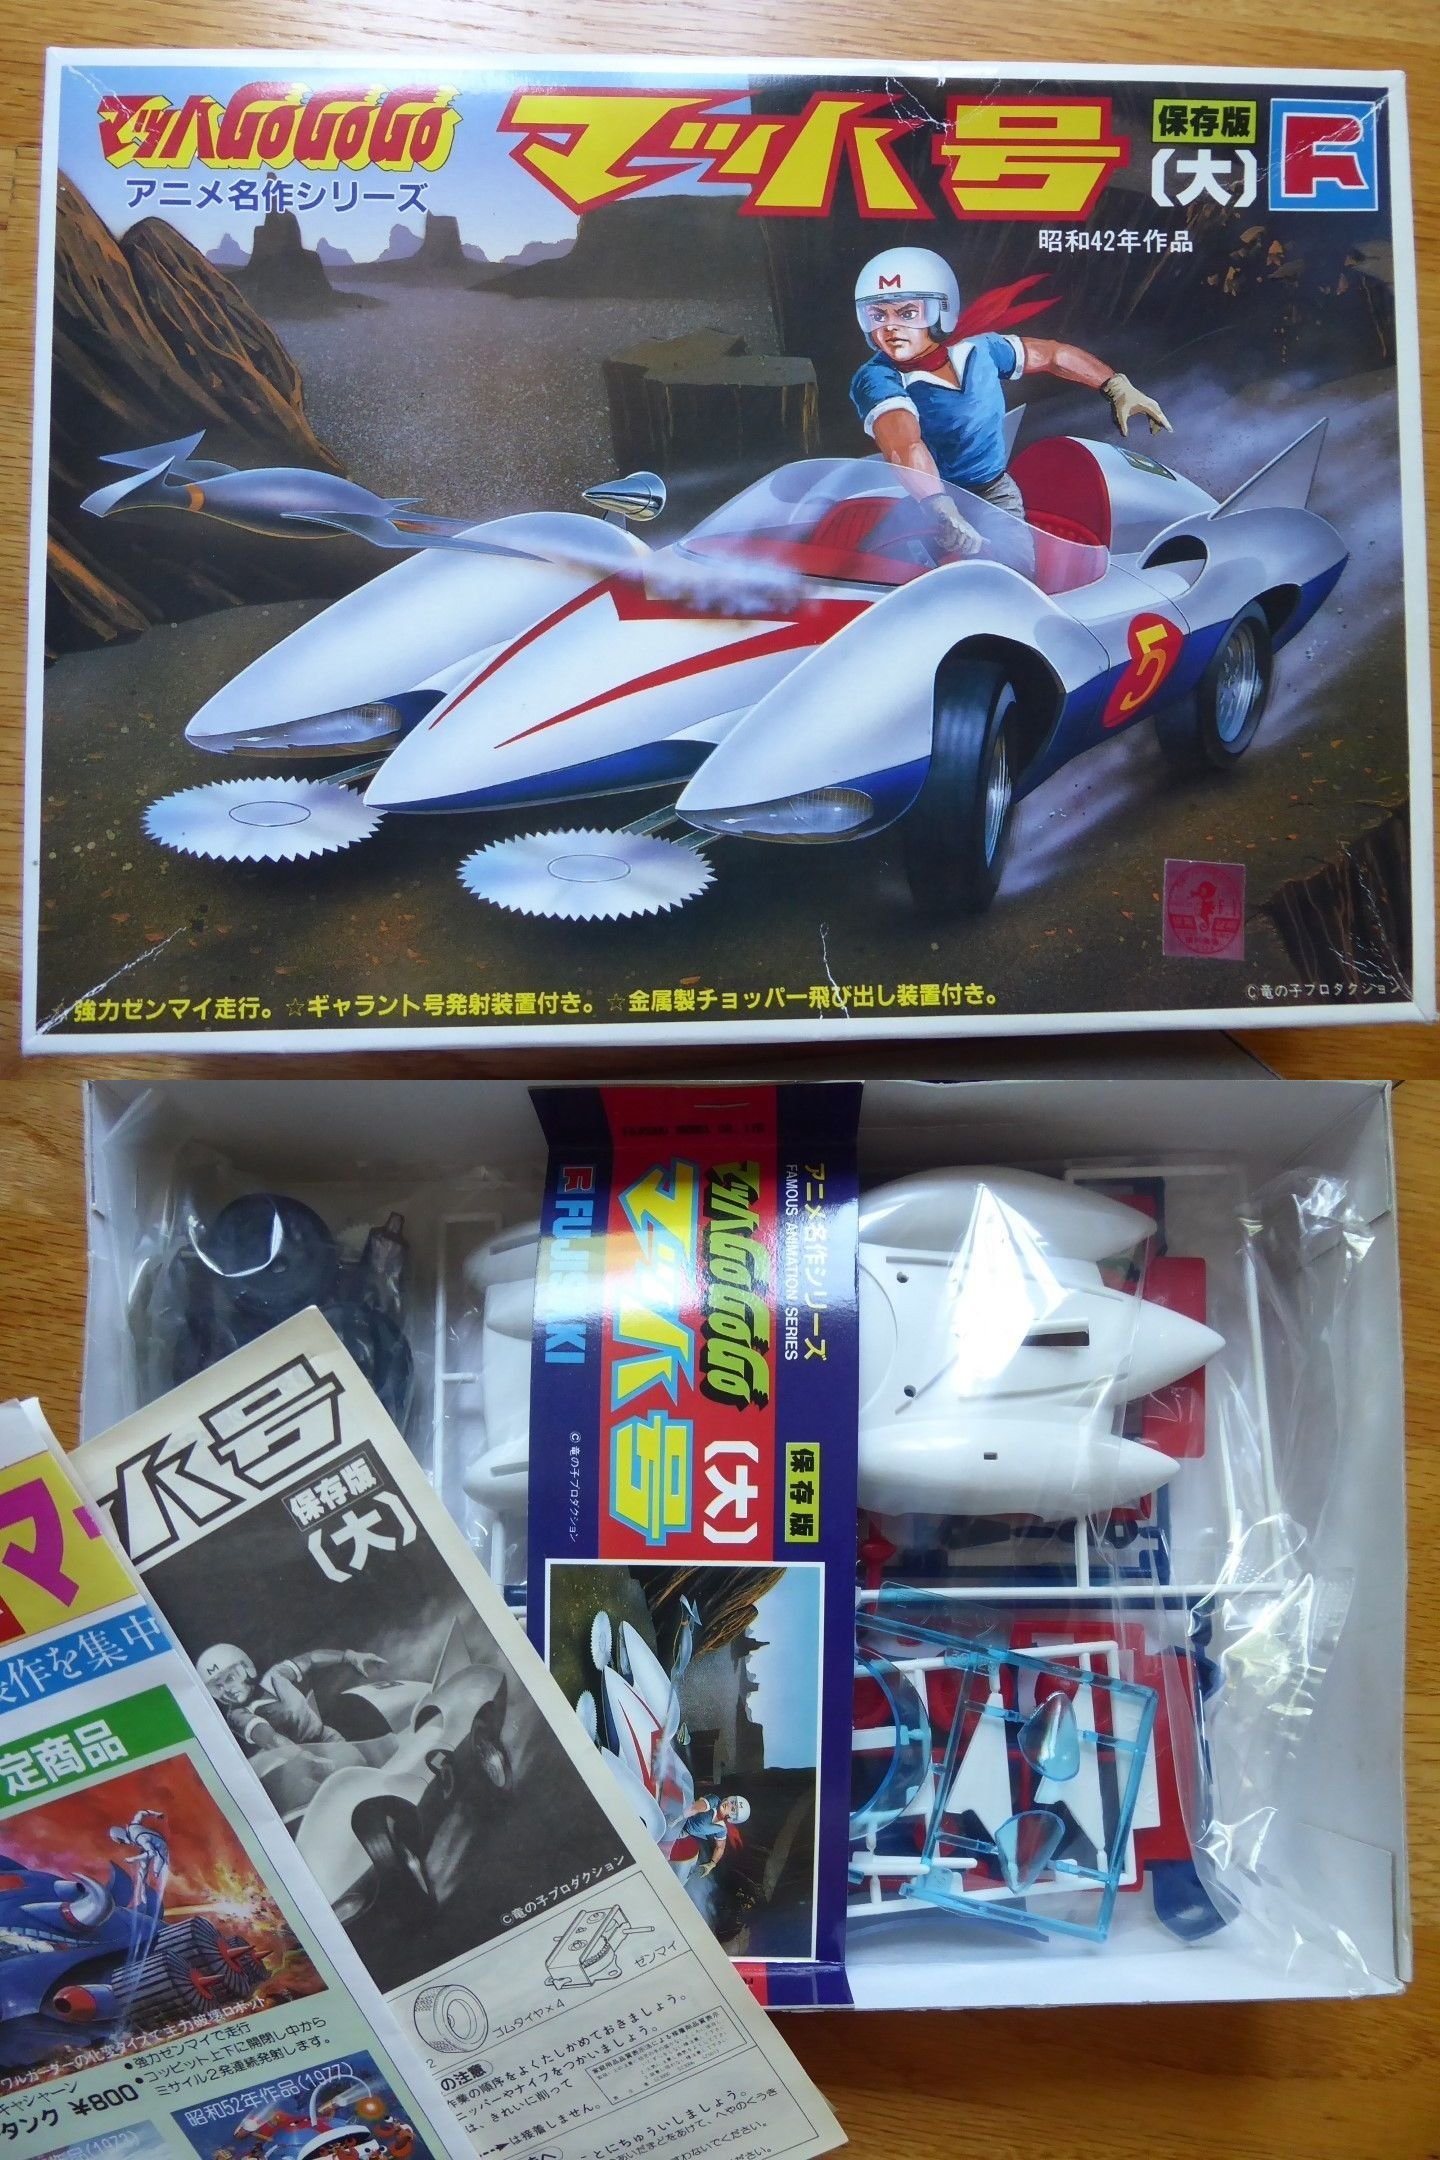 Anime 49210 speed racer mach 5 vintage model kit fujisaki f0101 600 free shipping buy it now only 36 on ebay anime speed racer vintage model